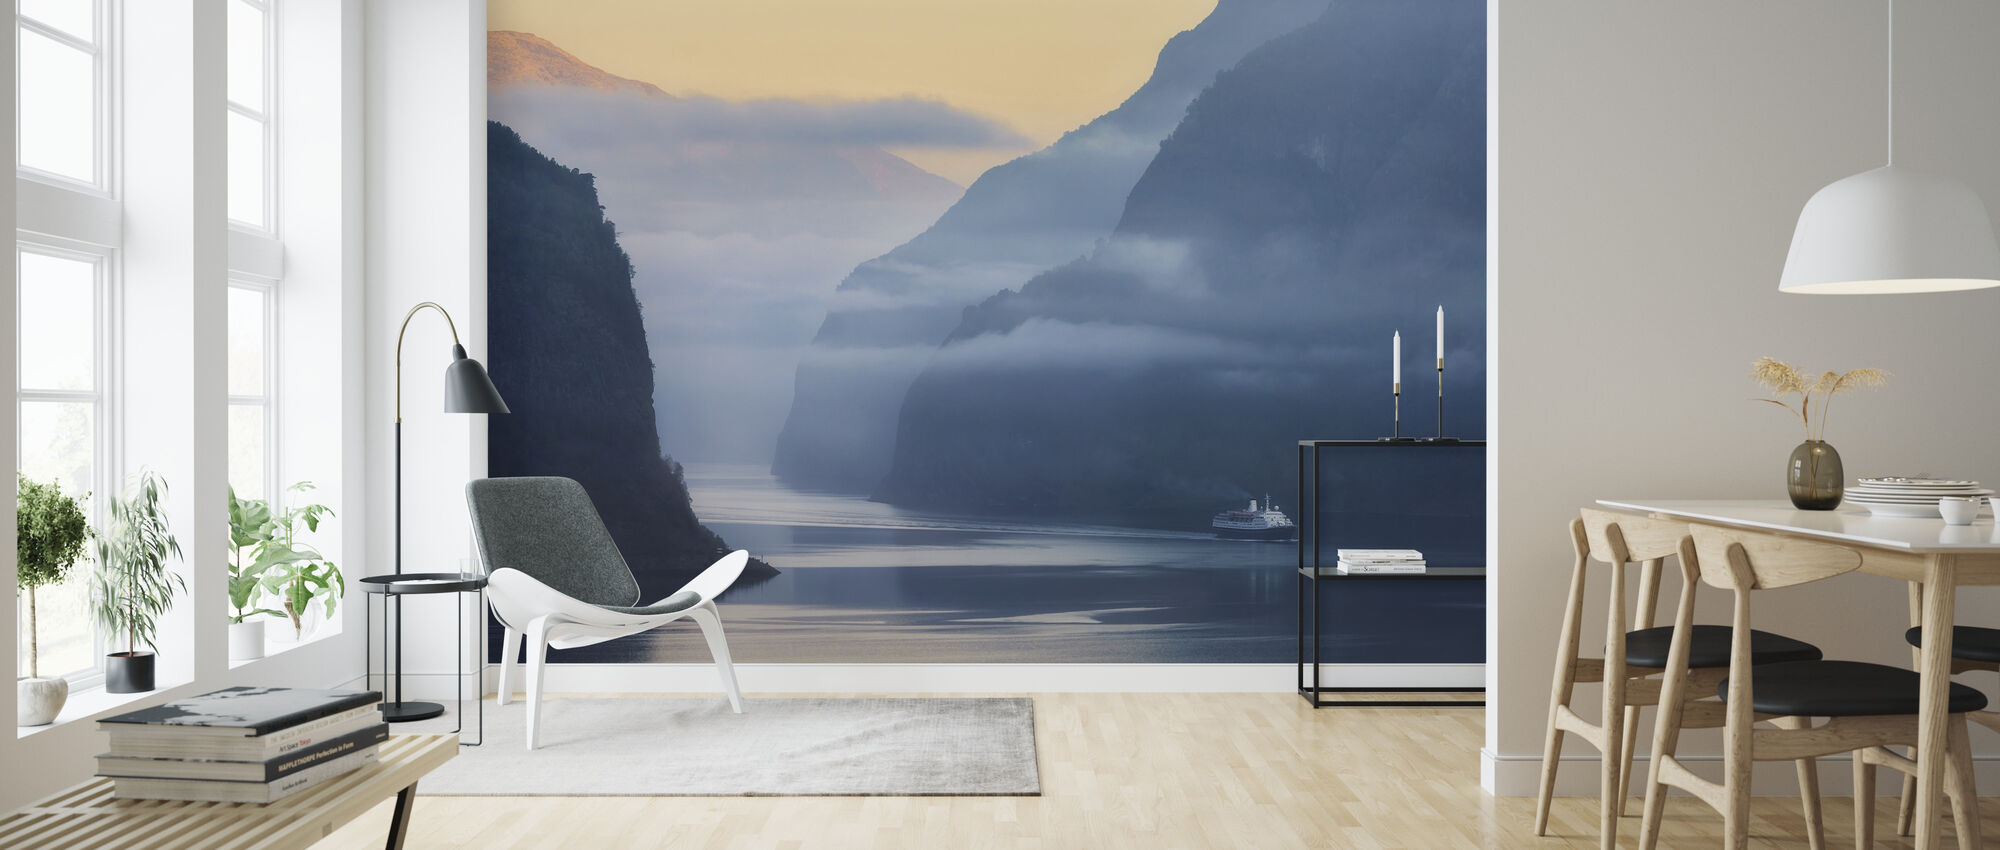 Norwegian Fjord in Fog - Wallpaper - Living Room